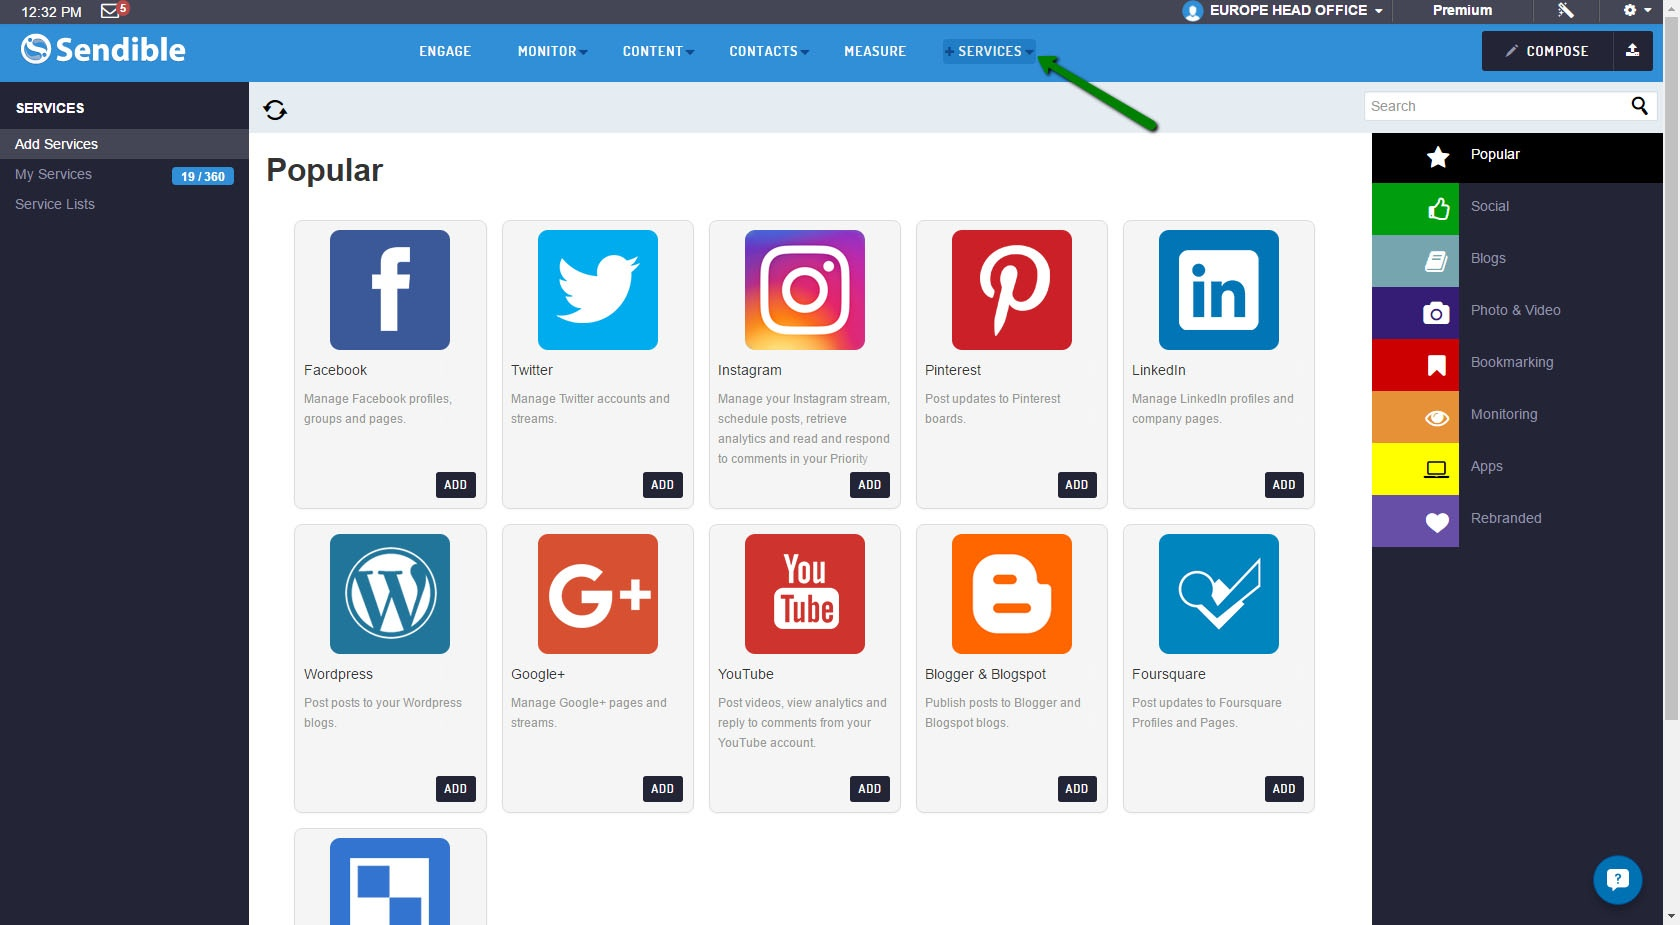 All major social media networks are available on Sendible